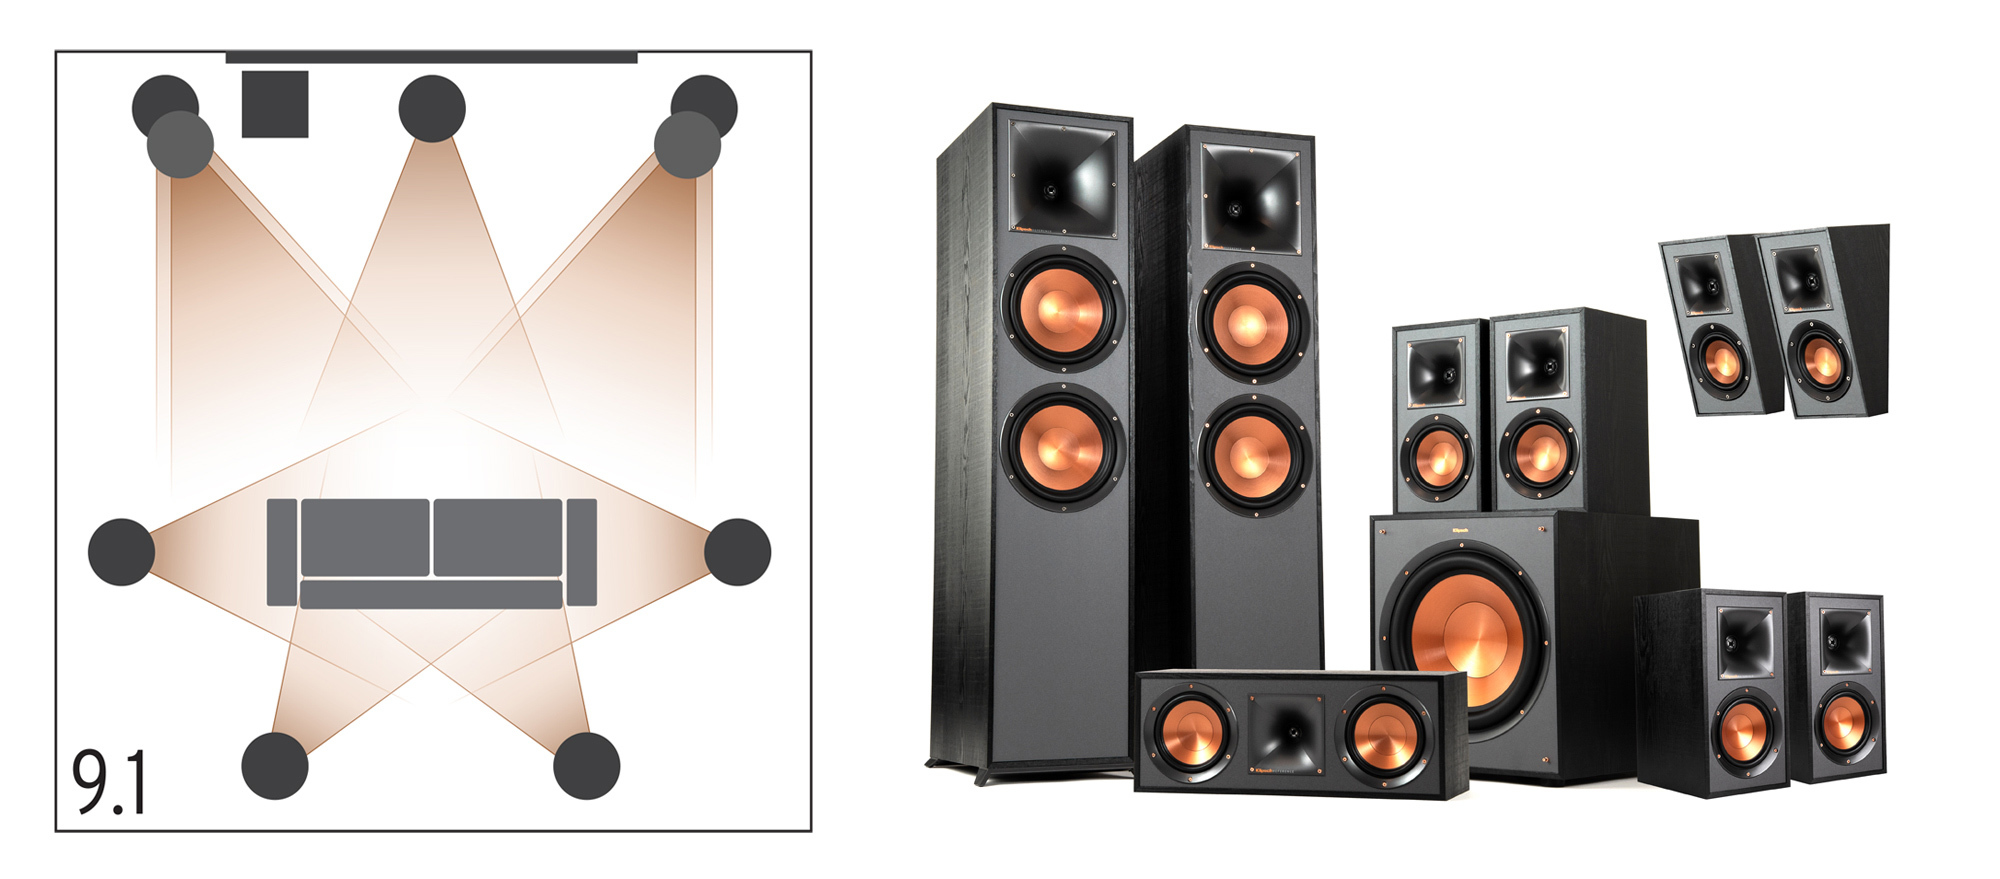 Klipsch surround sound 9.1 home theater configuration